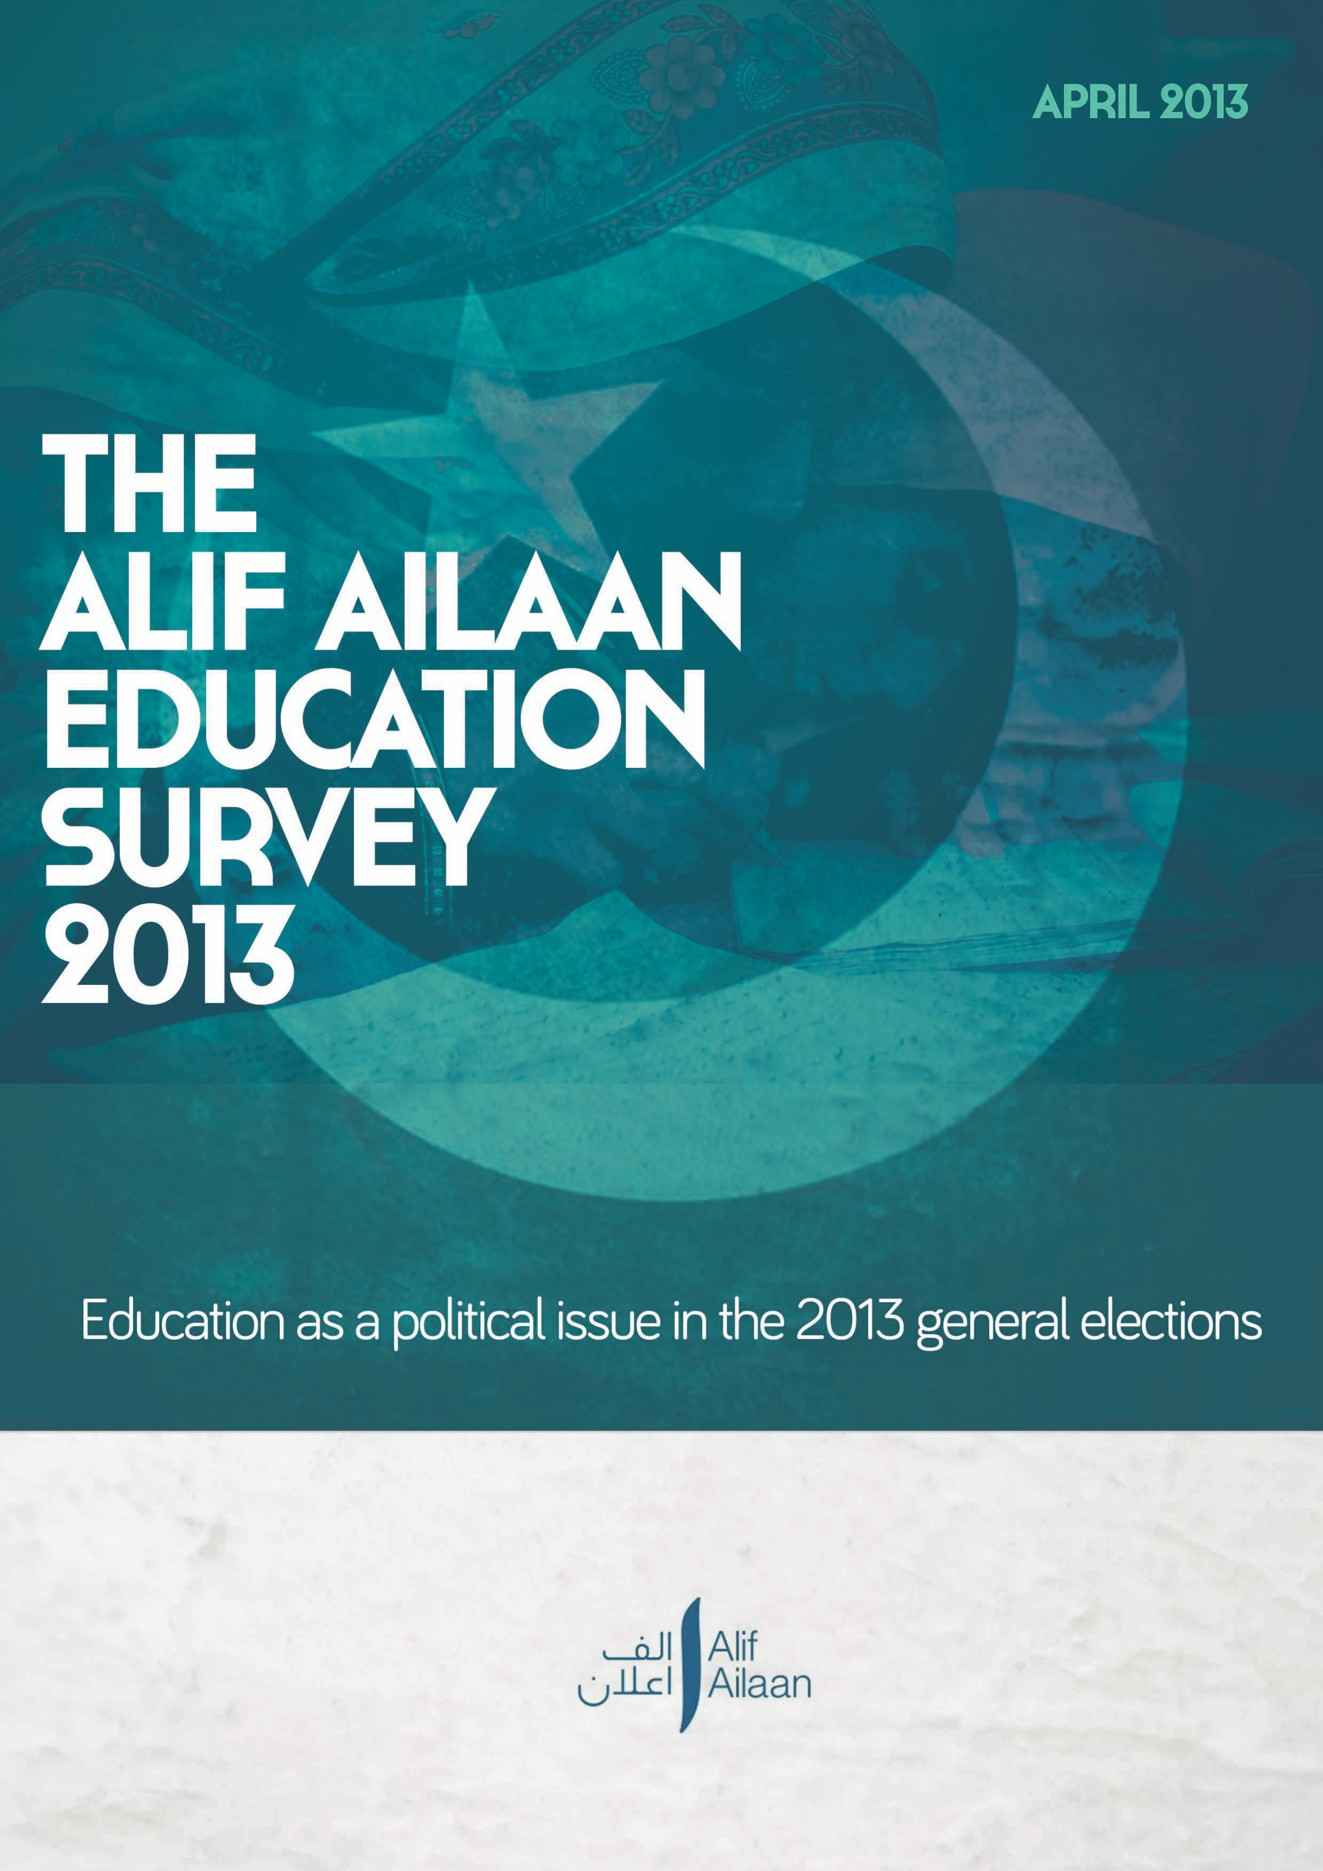 Alif_Ailaan_Education_Survey_2013.jpg